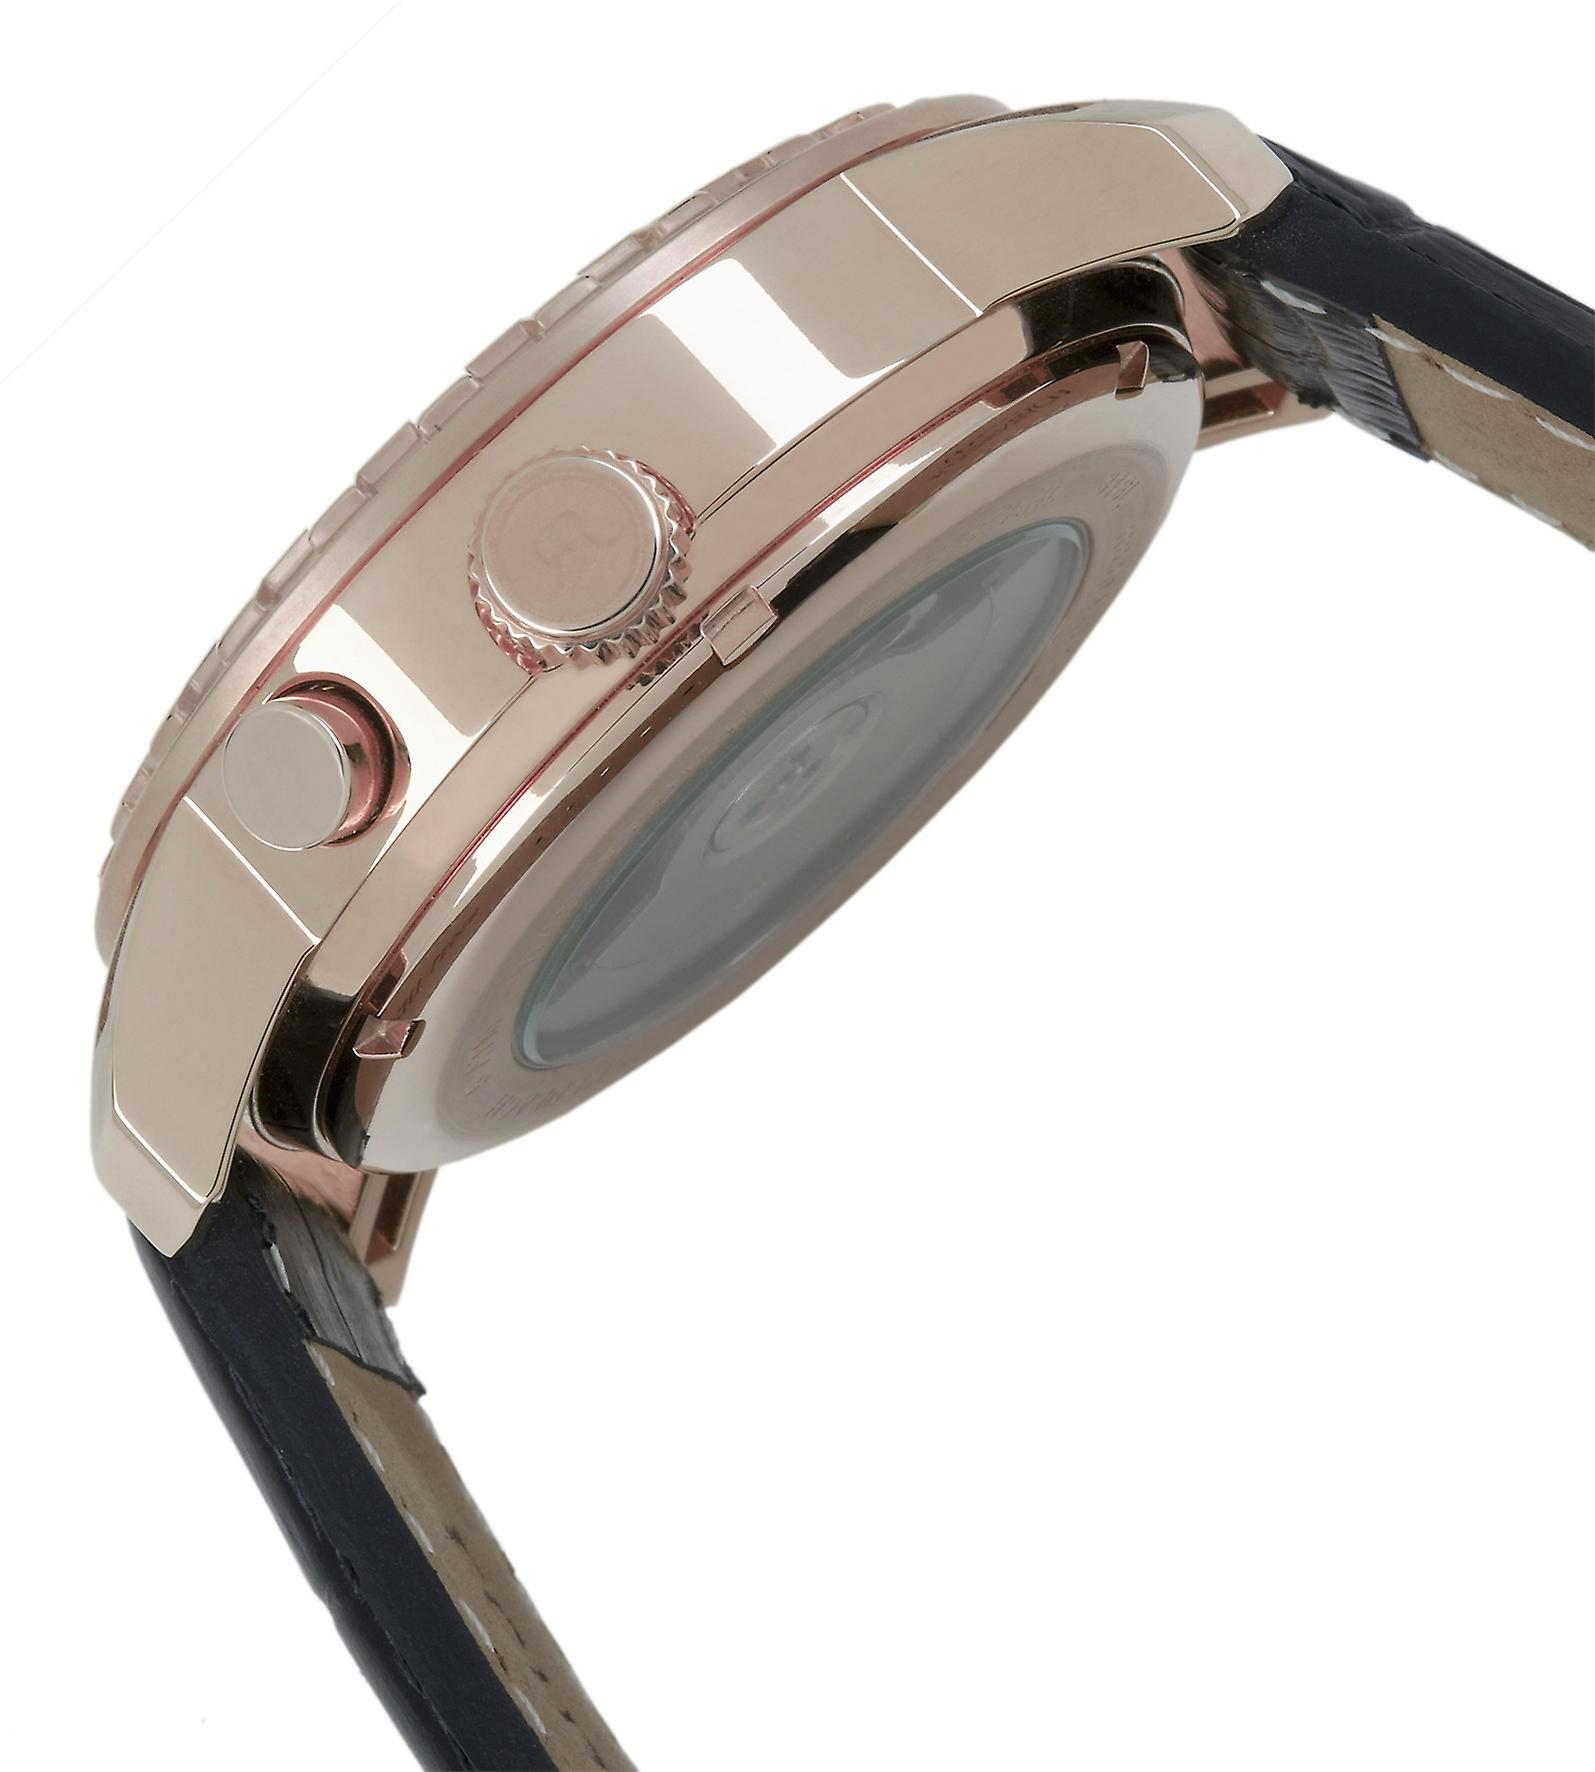 Reichenbach Gents automatic watch Mewes, RB304-322